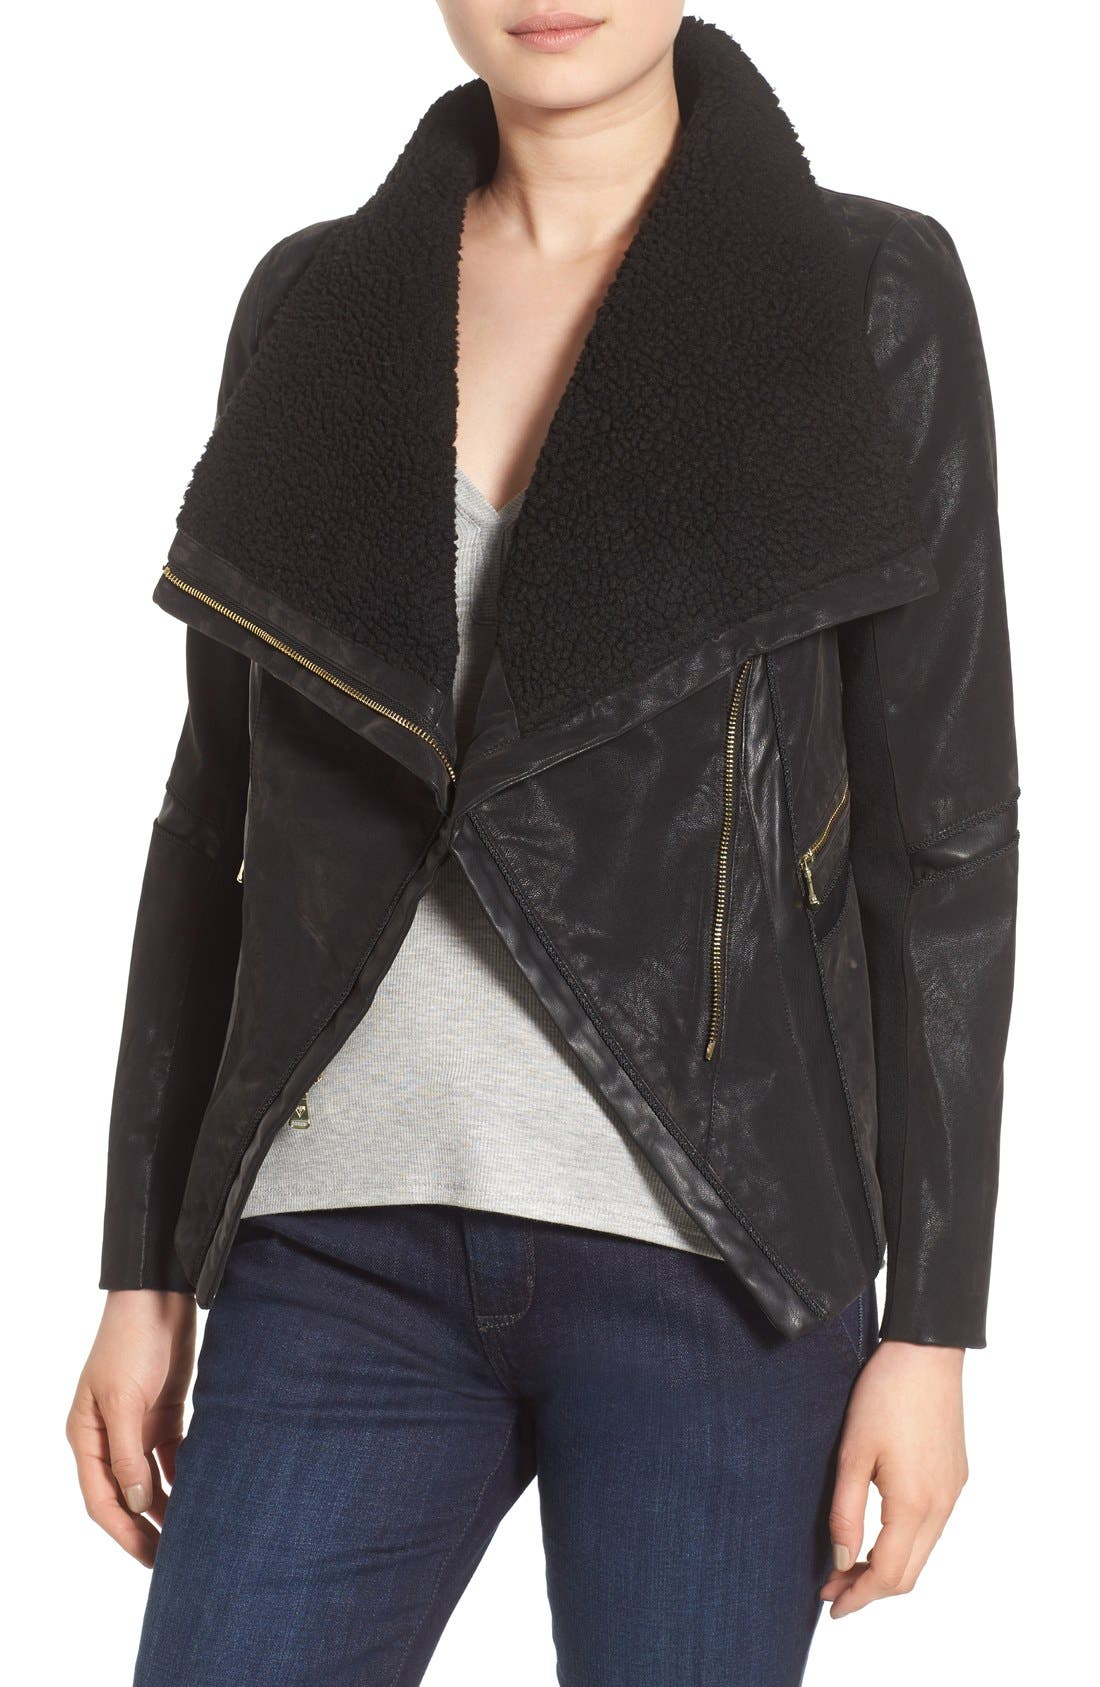 Main Image - GUESS Faux Leather Moto Jacket with Faux Fur Trim